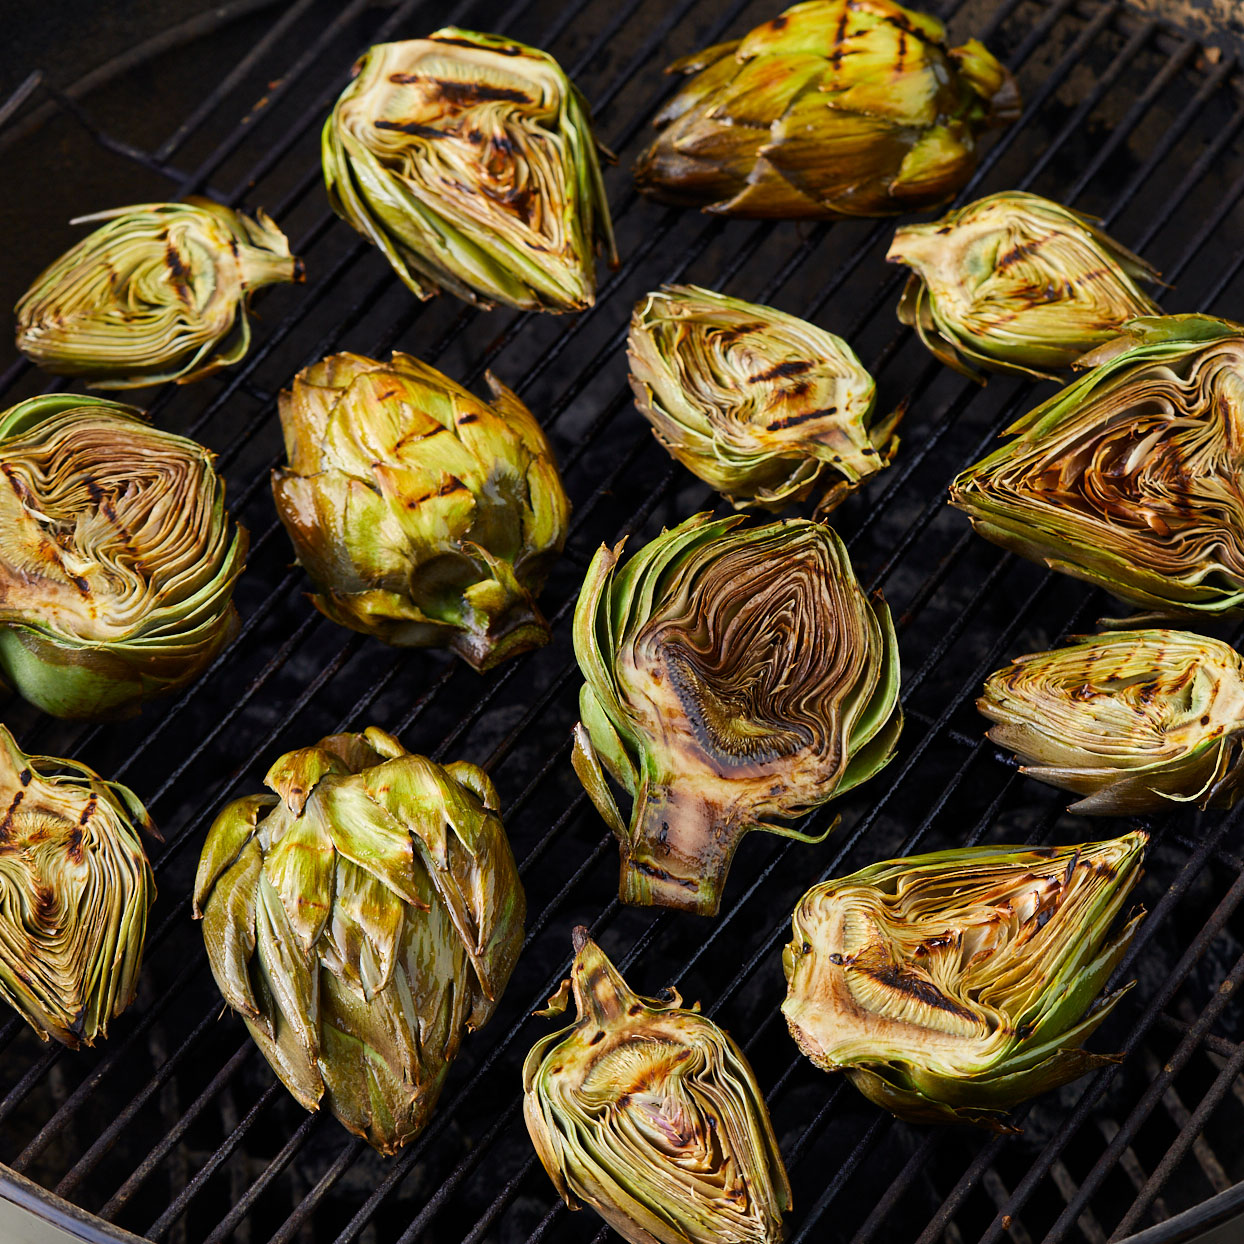 Artichokes-on-the-grill